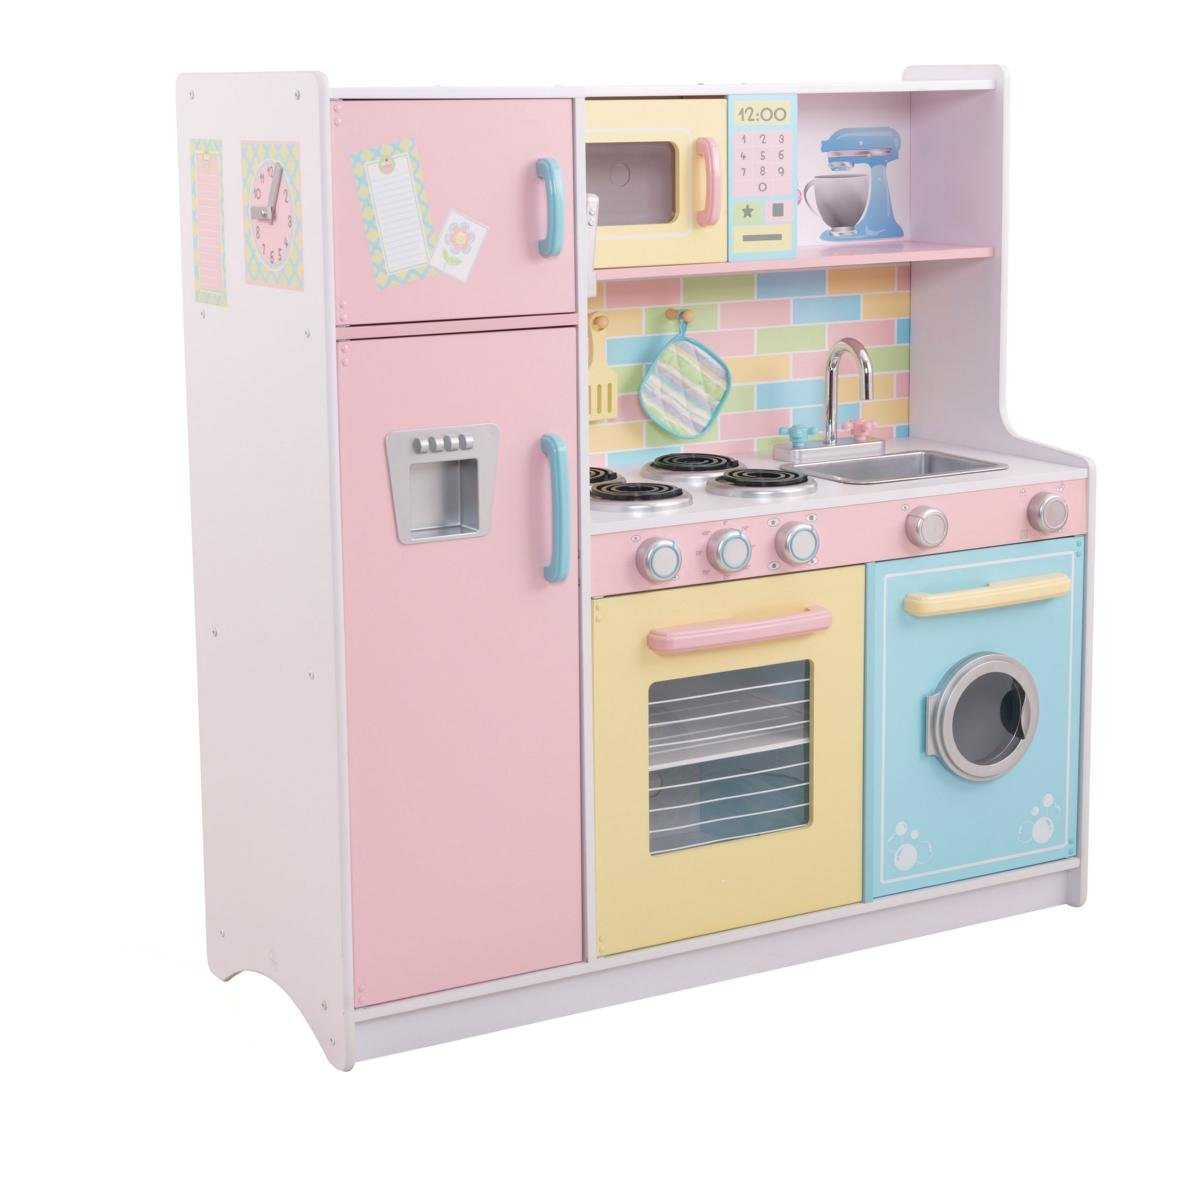 This Kidkraft Play Kitchen Is Great For Both Girls And Boys Its Made